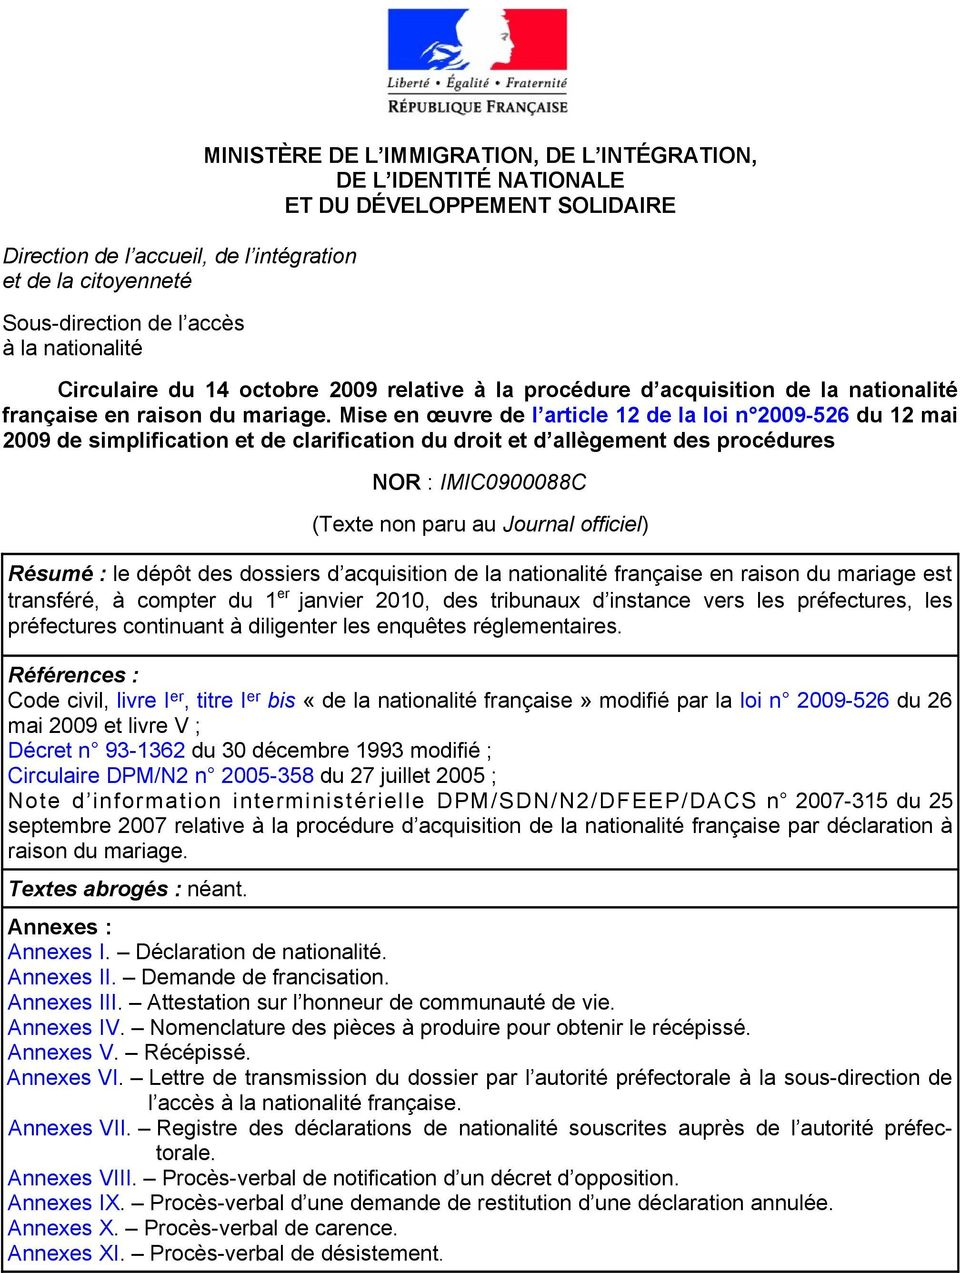 Minist re de l immigration de l int gration de l - Office francaise d immigration et d integration ...